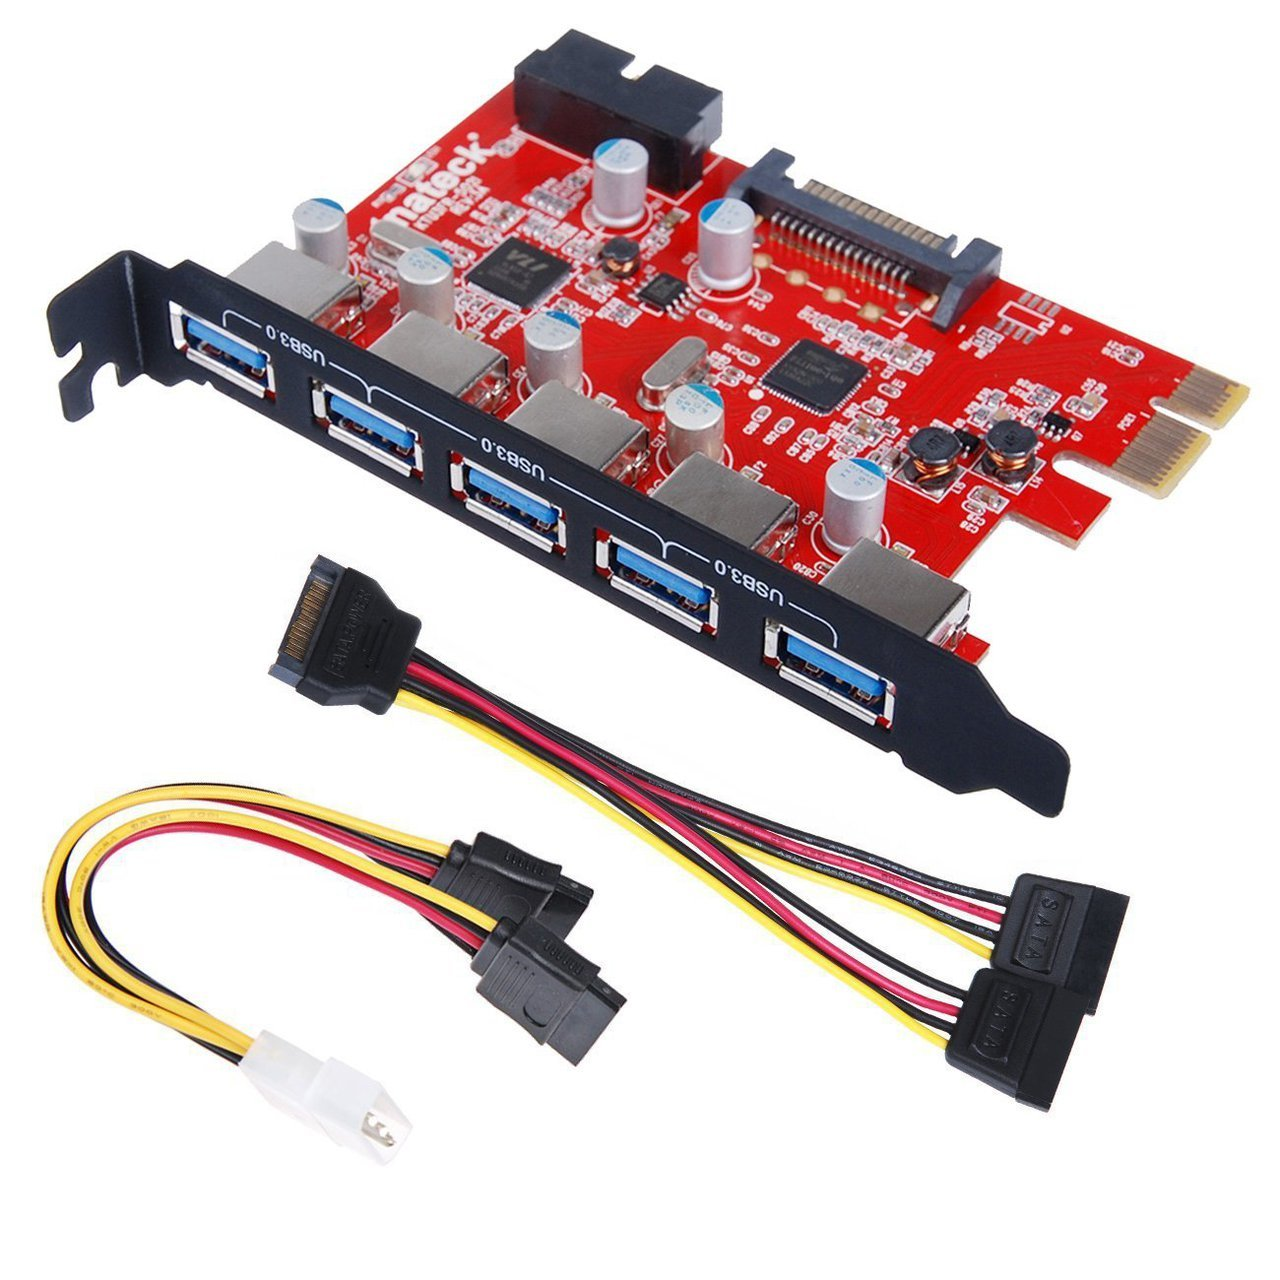 Inateck PCI-E to USB 3.0 5-Port PCI Express Card and 15-Pin Power Connector, Mini PCI-E USB 3.0 Hub Controller Adapter, with Internal USB 3.0 20-PIN Connector